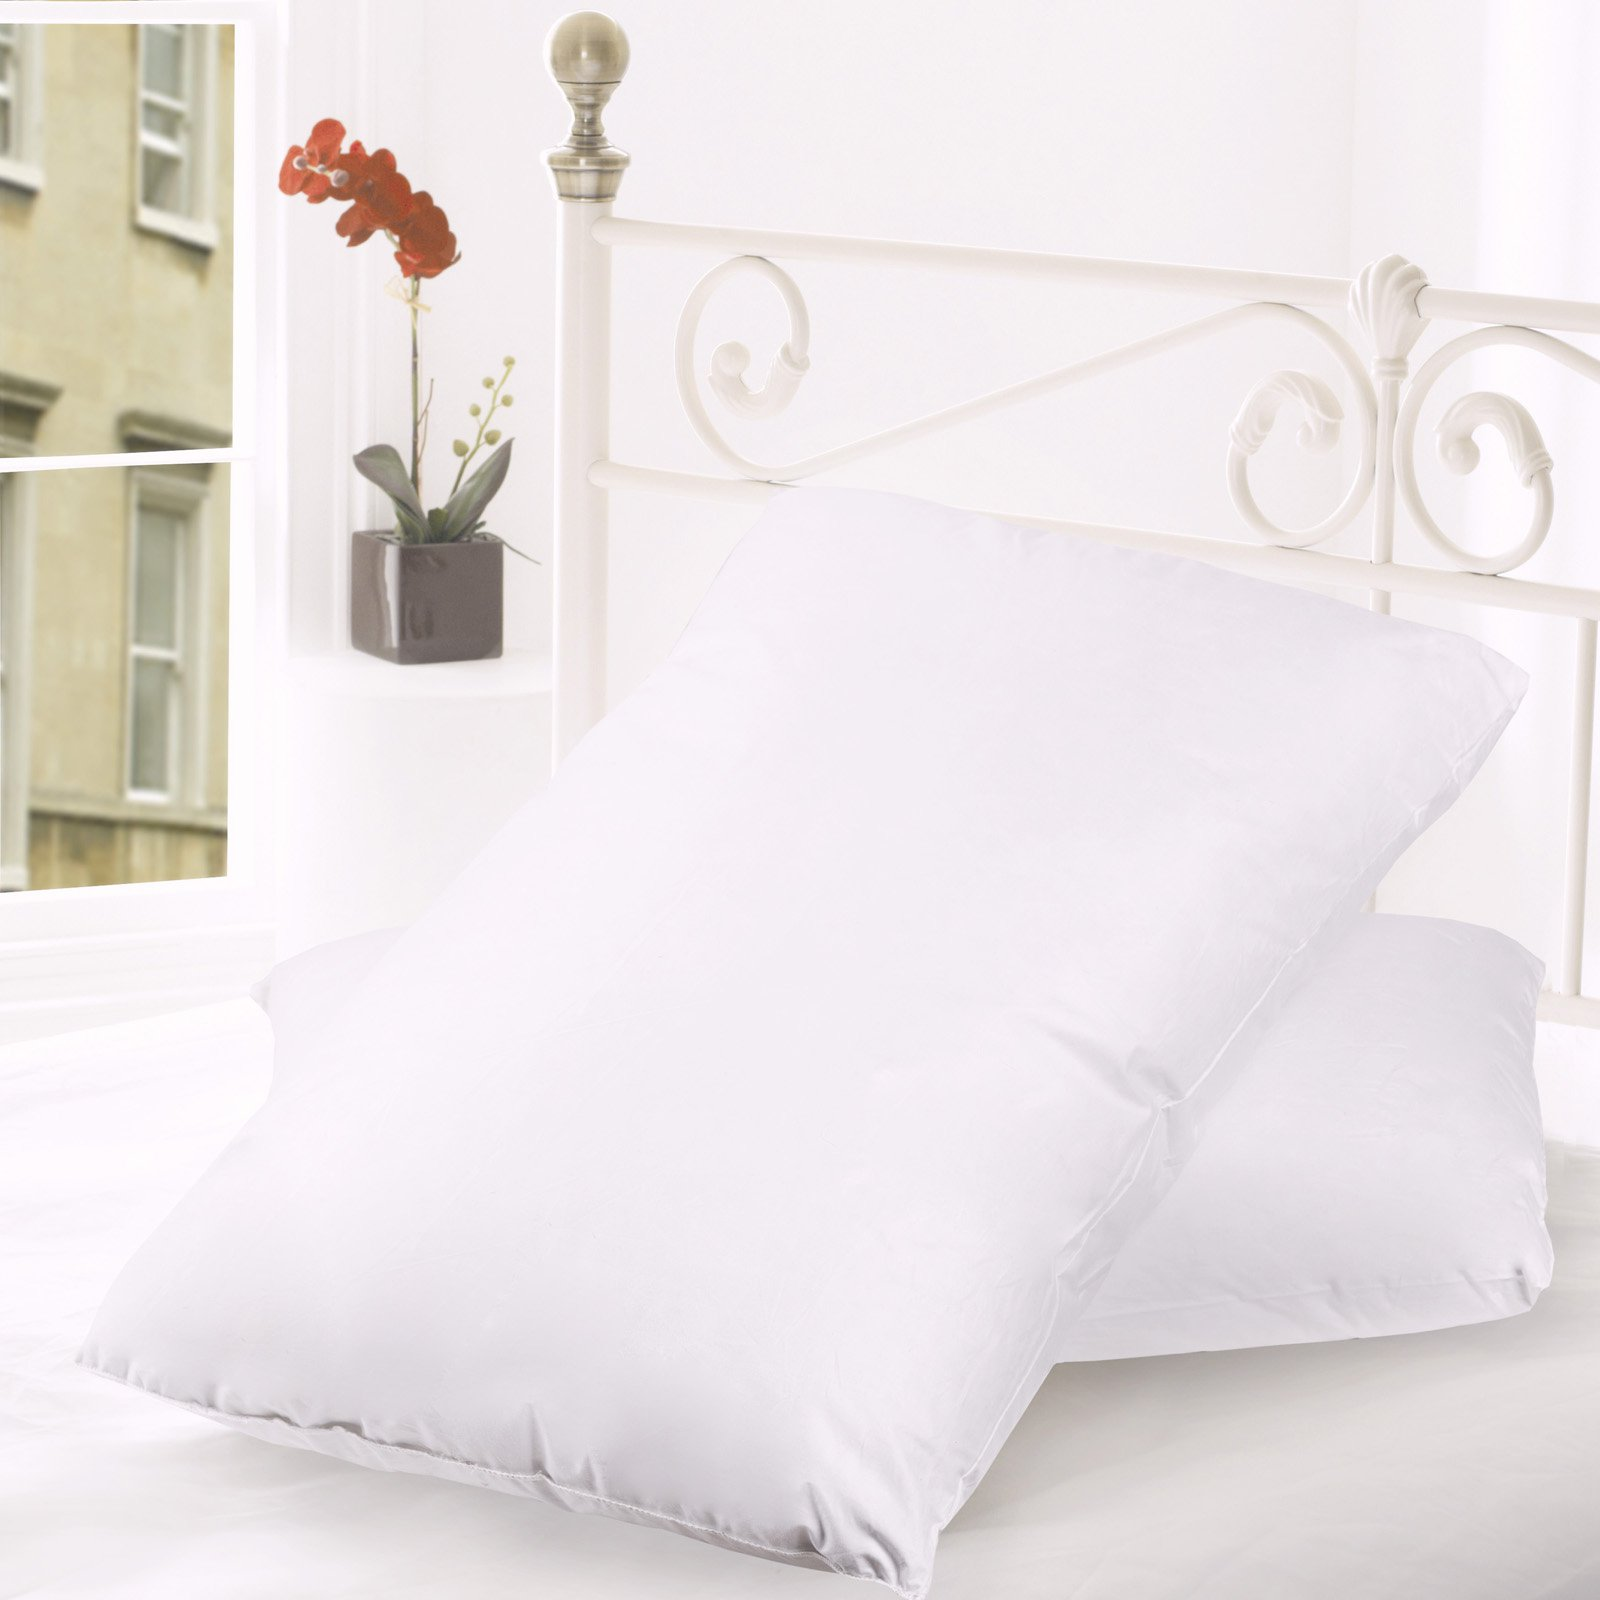 Down and Feather Cotton Bed Pillow - Set of 2 by Sweet Home Collection